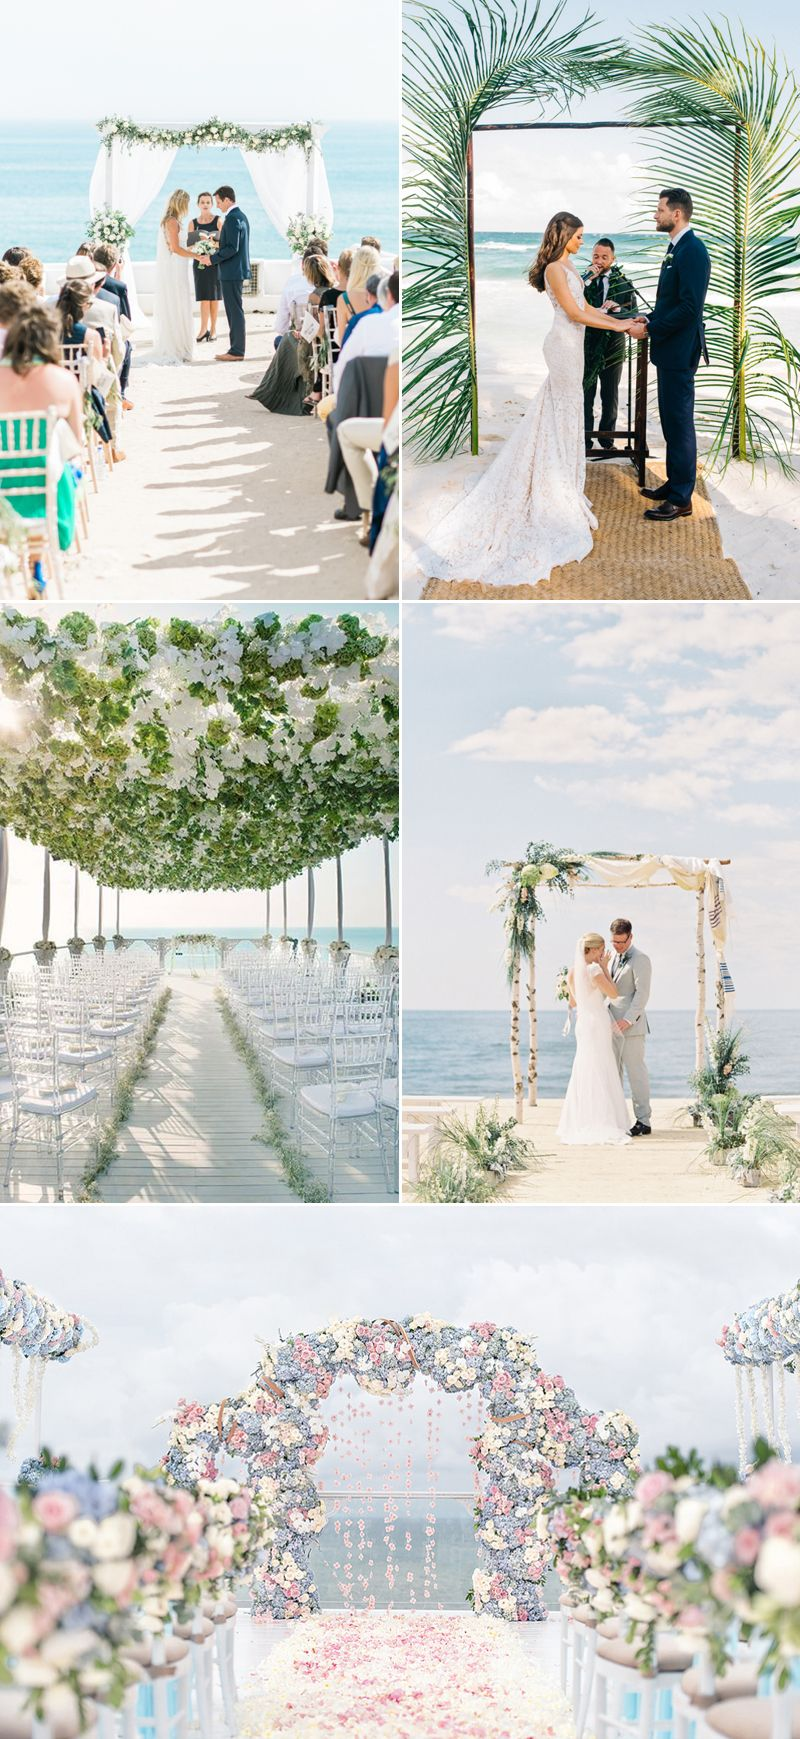 23 Romantic Beach Themed Wedding Ideas | Signature style, Creative ...